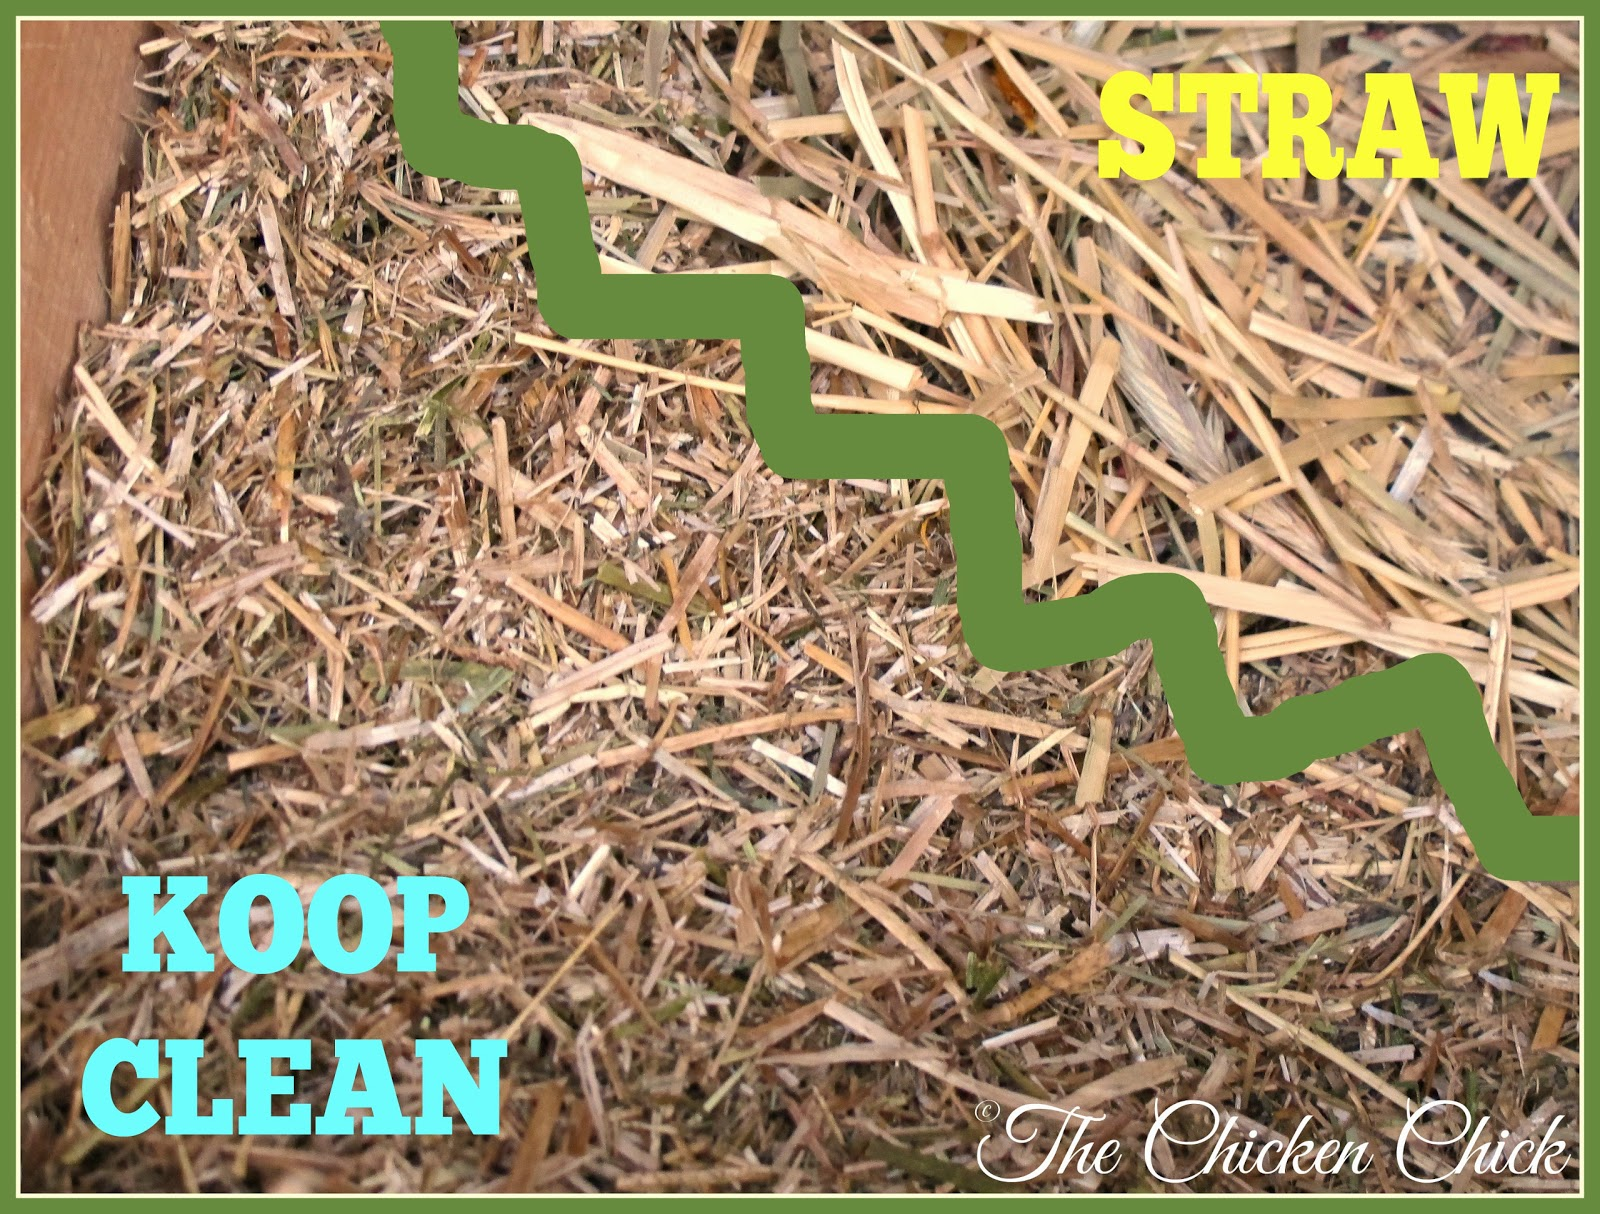 The hay and straw in Koop Clean are cut short, which maximizes absorbency and hastens decomposition of spent bedding in compost vs. straw alone.